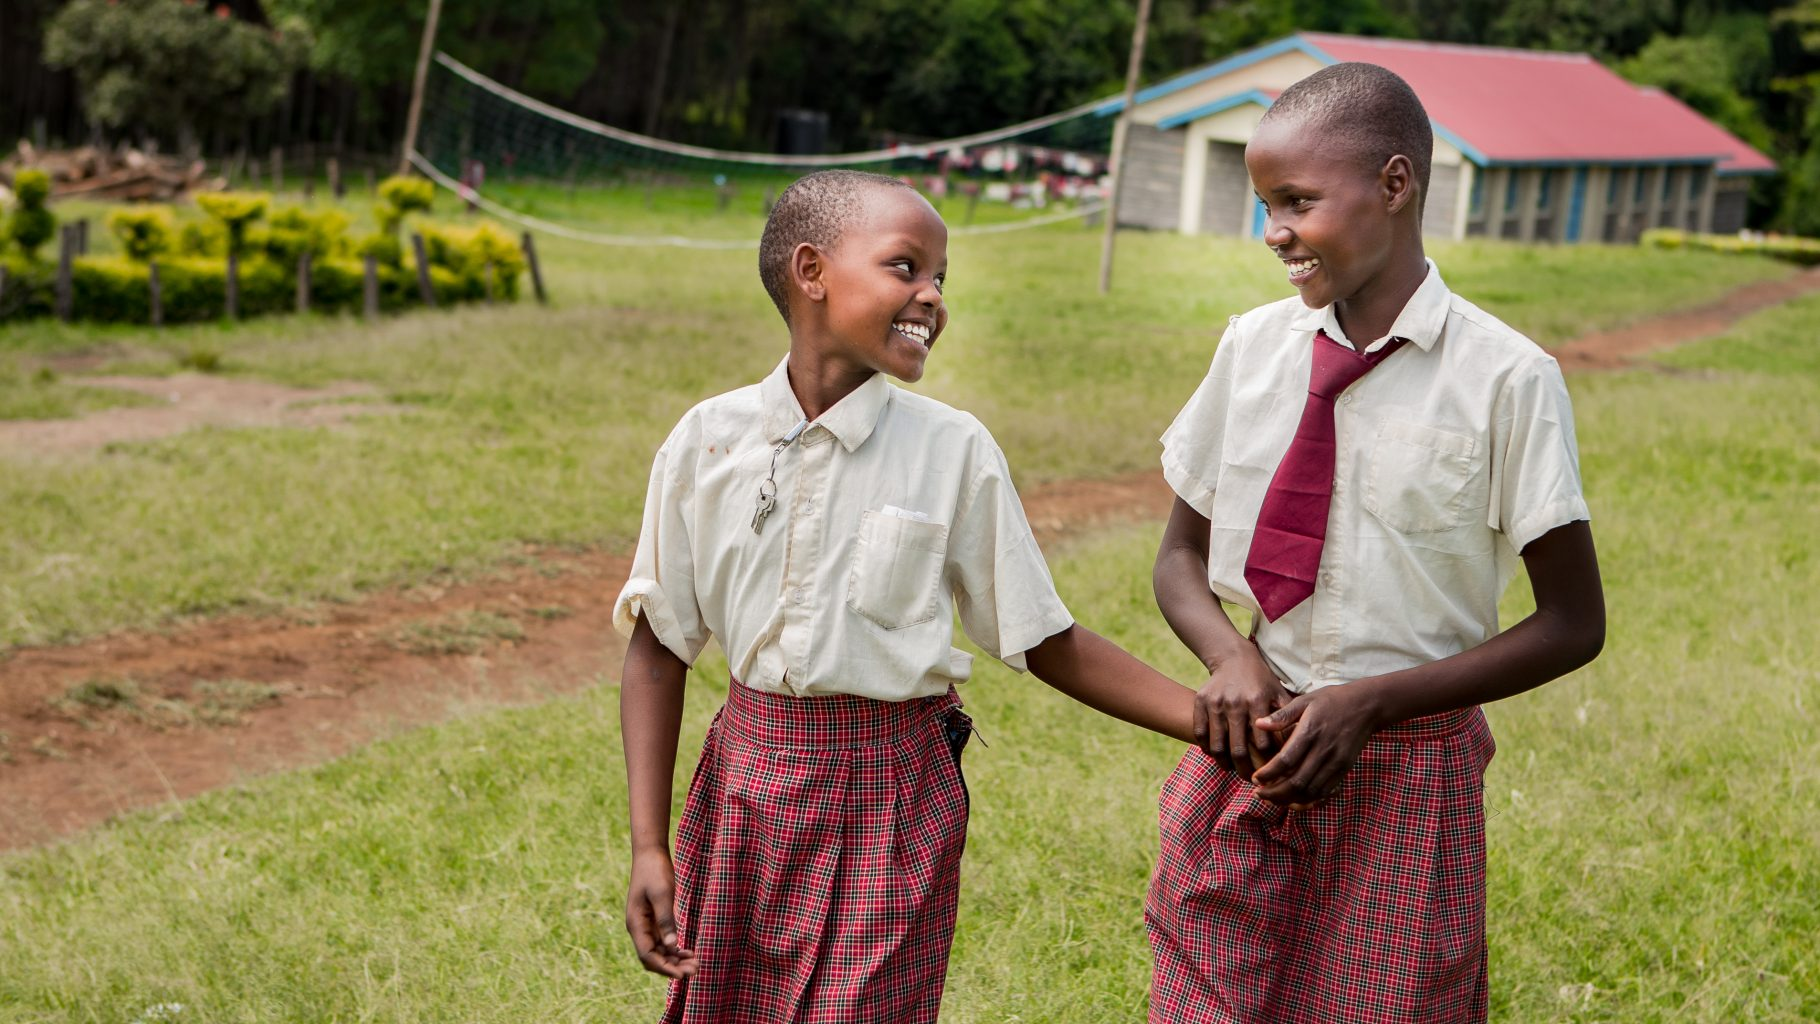 Image: Two smiling students from Kakenya's Center for Excellence!